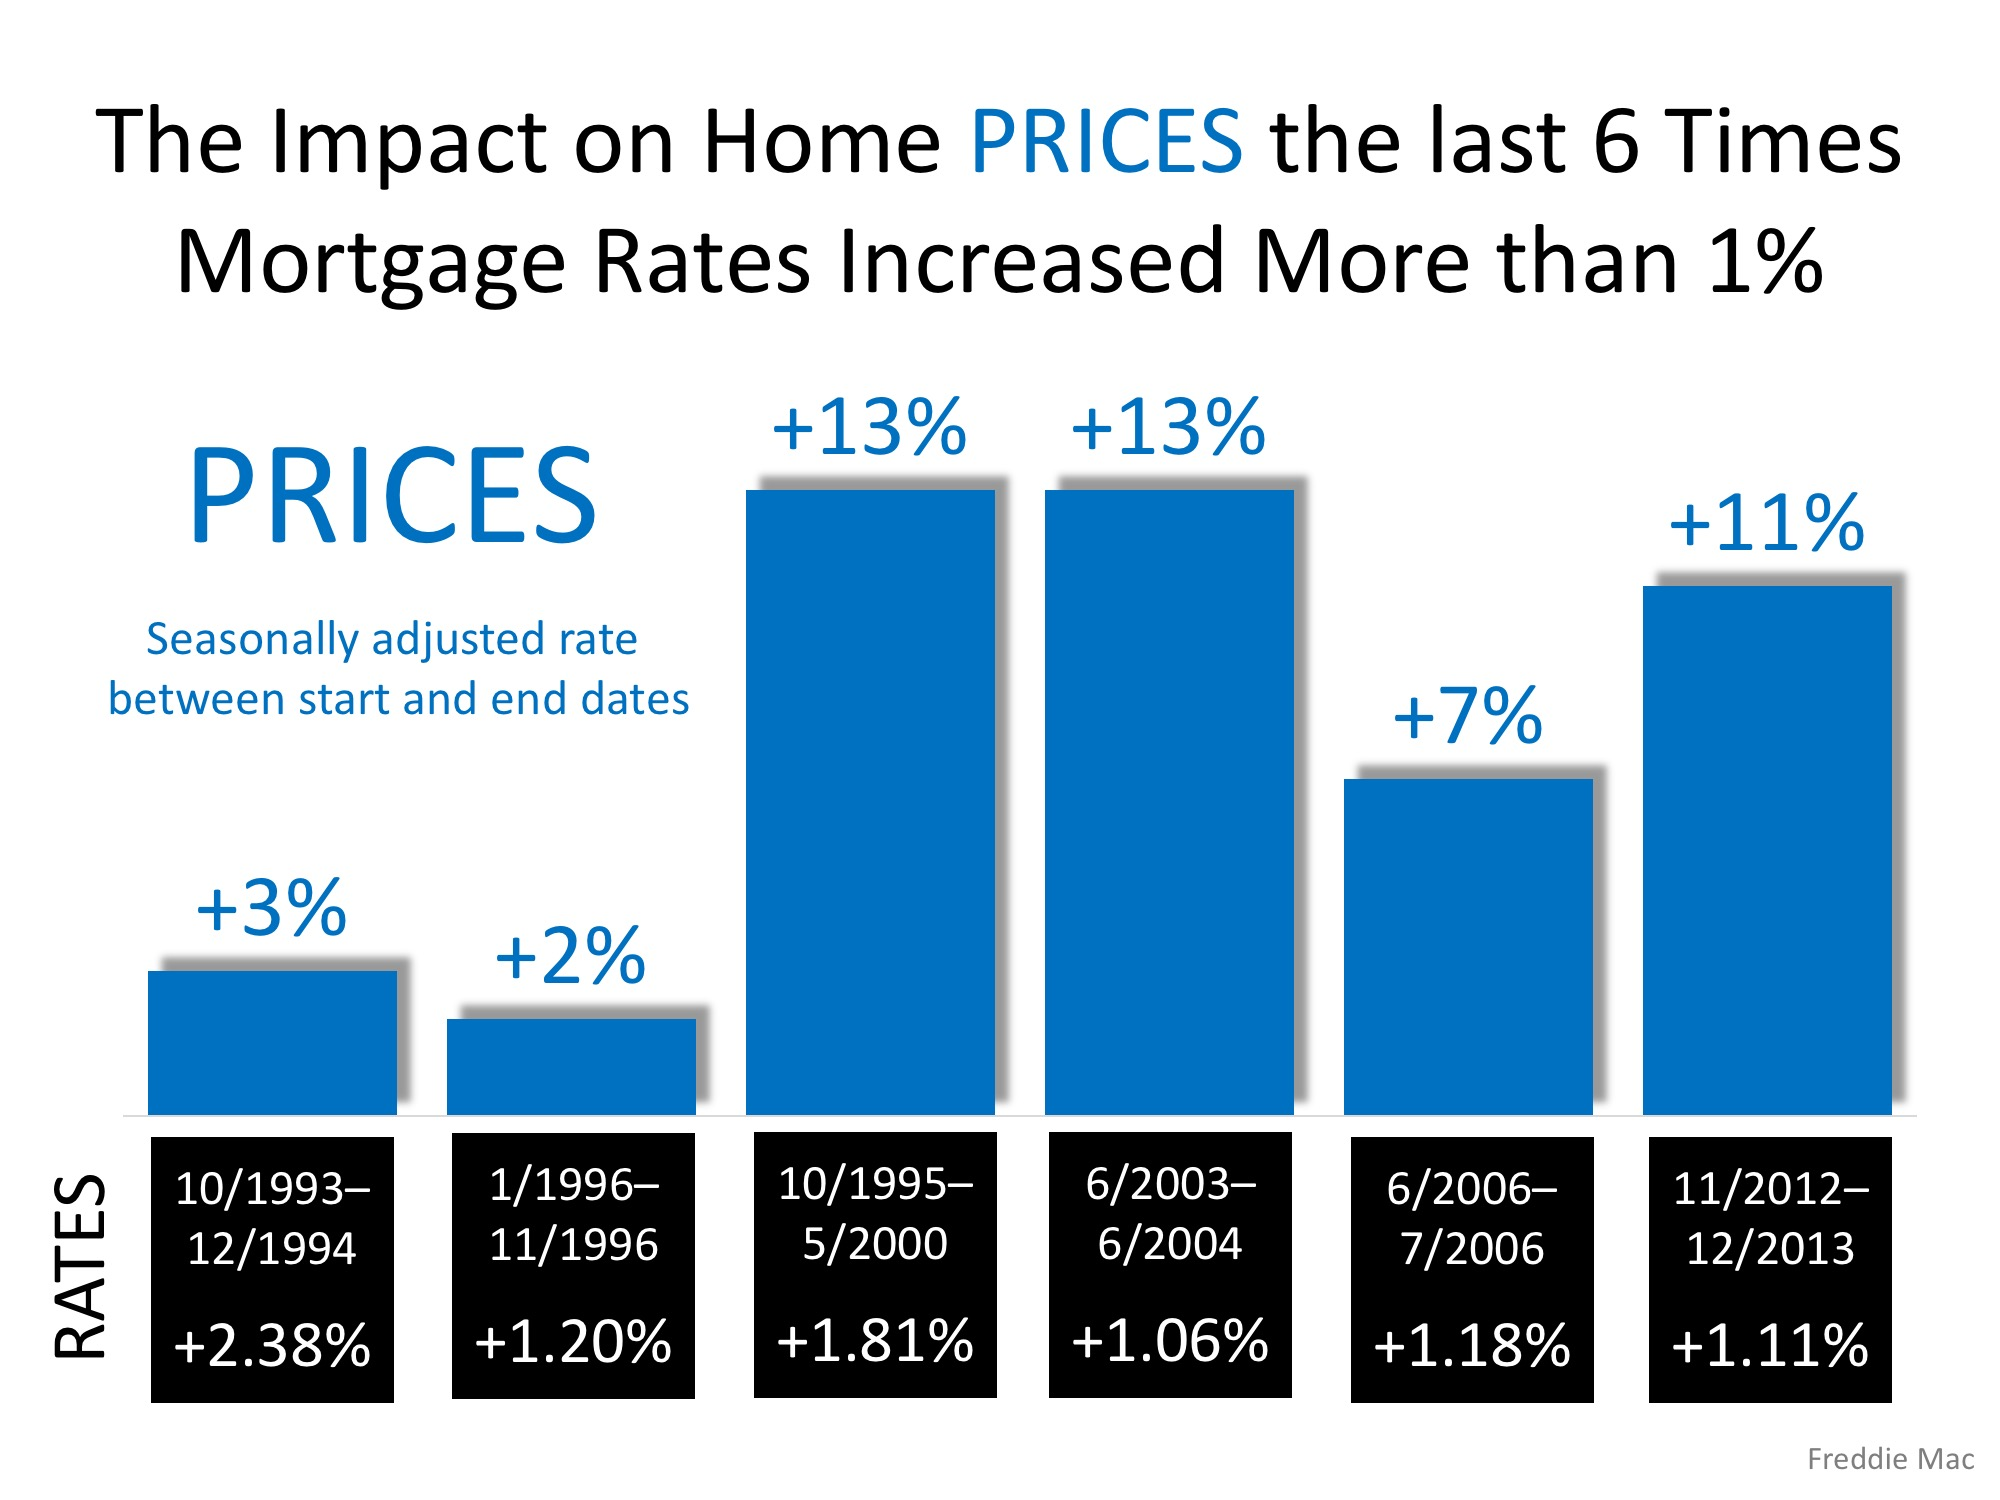 Freddie Mac: Rising Mortgage Rates DO NOT Lead to Falling Home Prices | Simplifying The Market